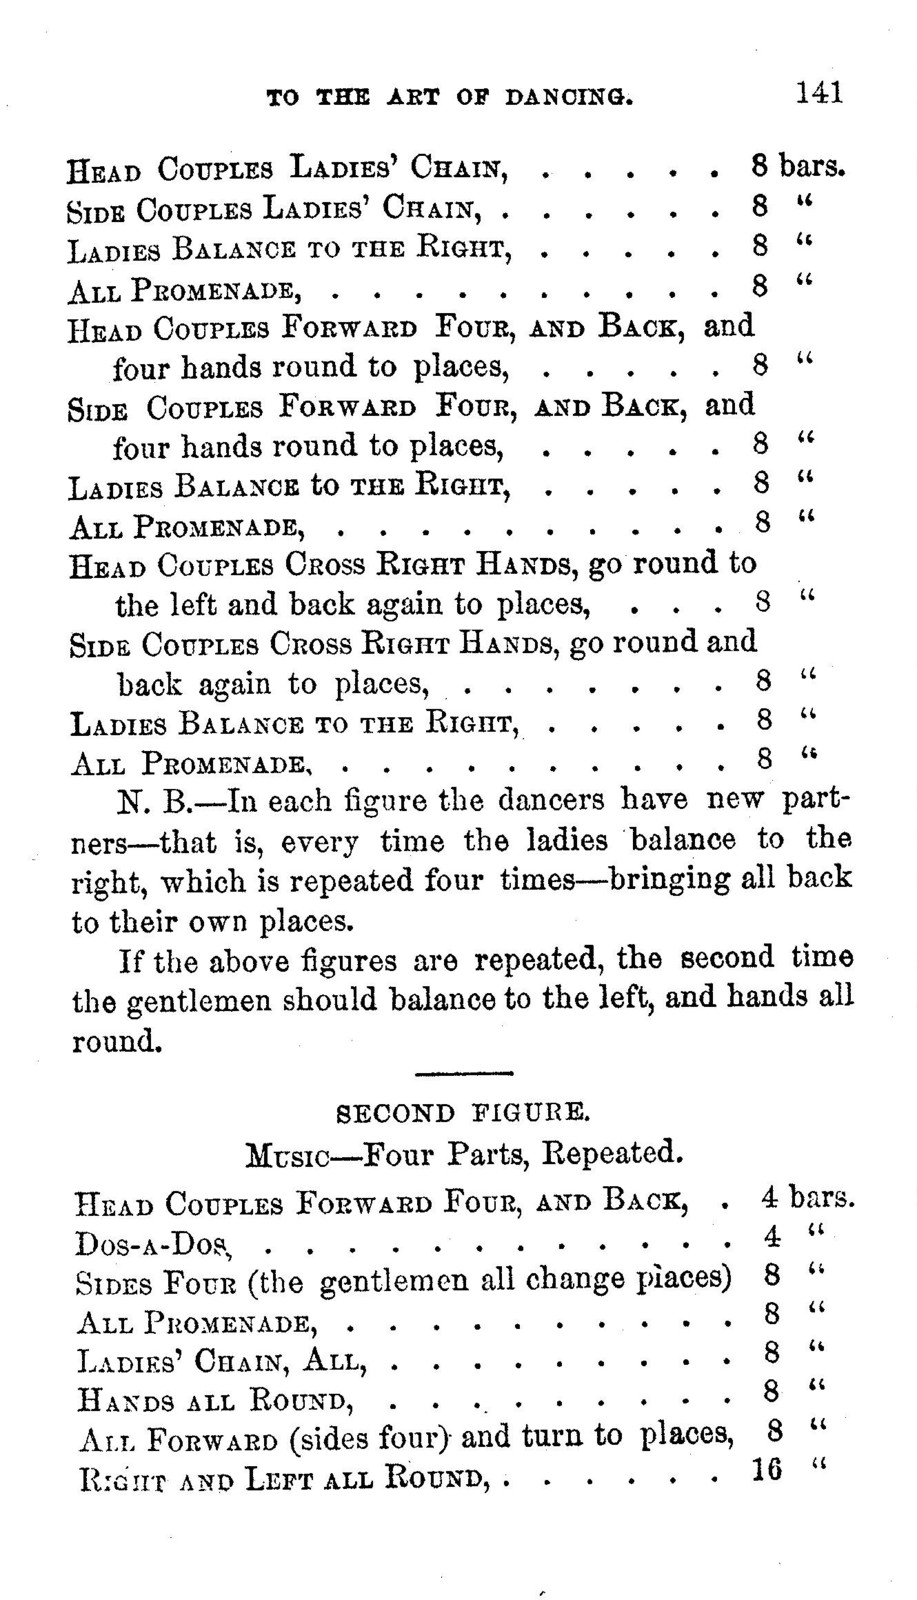 A  complete practical guide to the art of dancing Containing descriptions of all fashionable and approved dances, full directions for calling the figures, the amount of music required; hints on etiquette, the toilet, etc